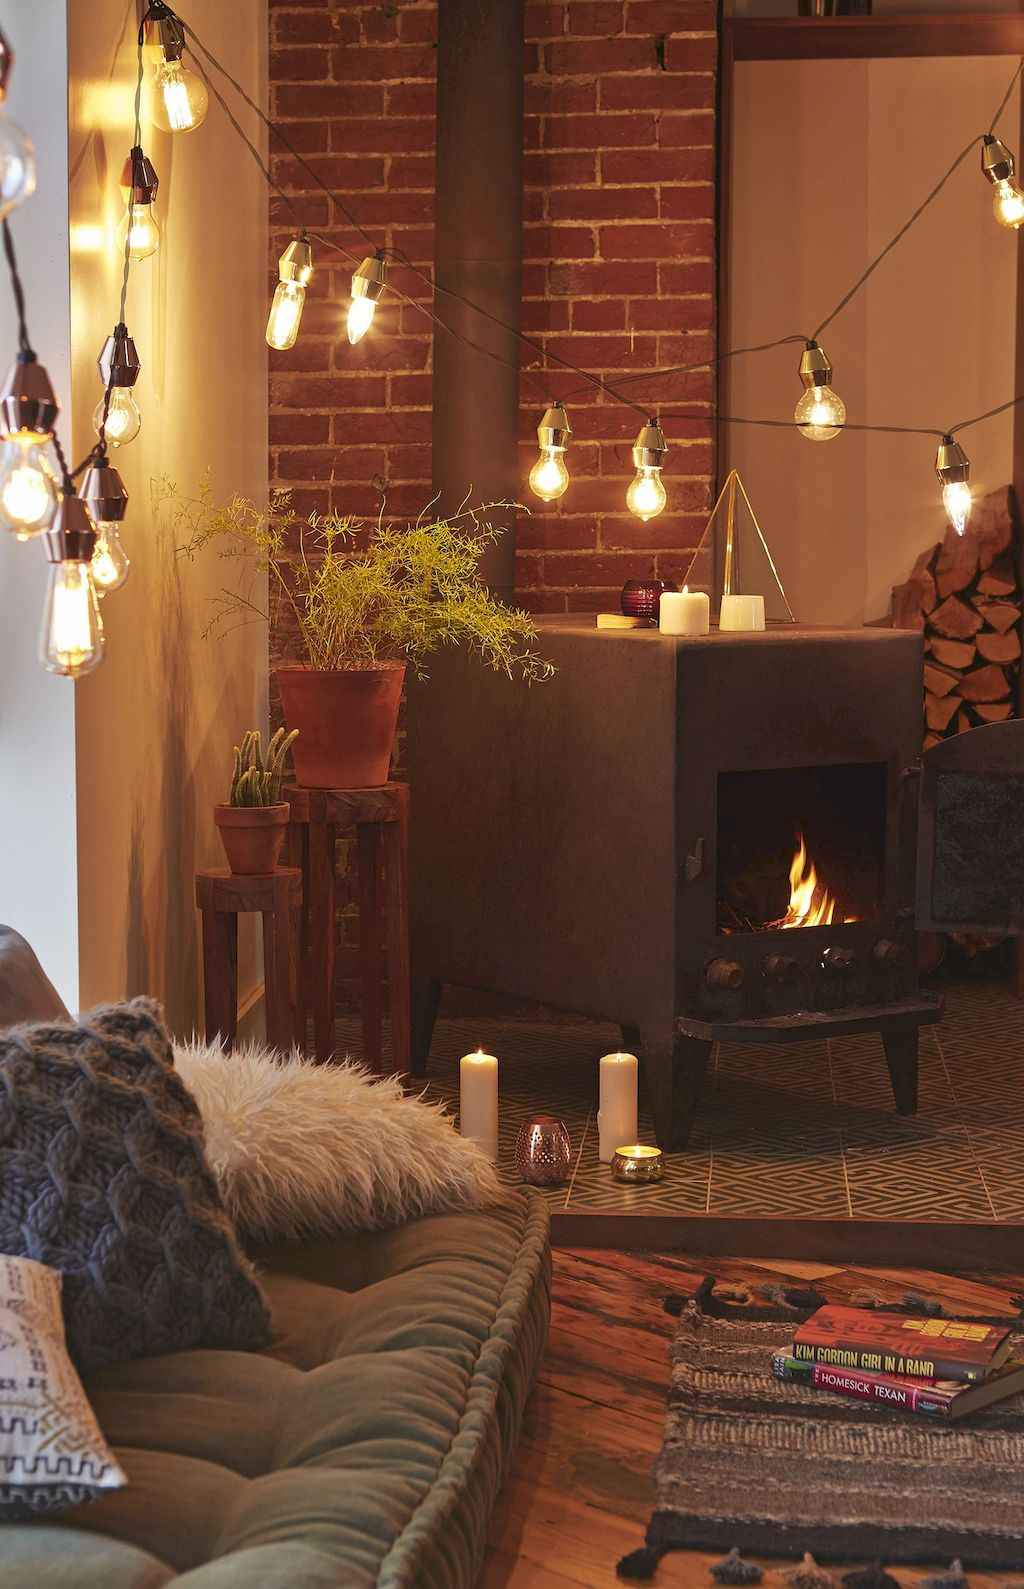 Cozy apartment decorating ideas on a budget (81)